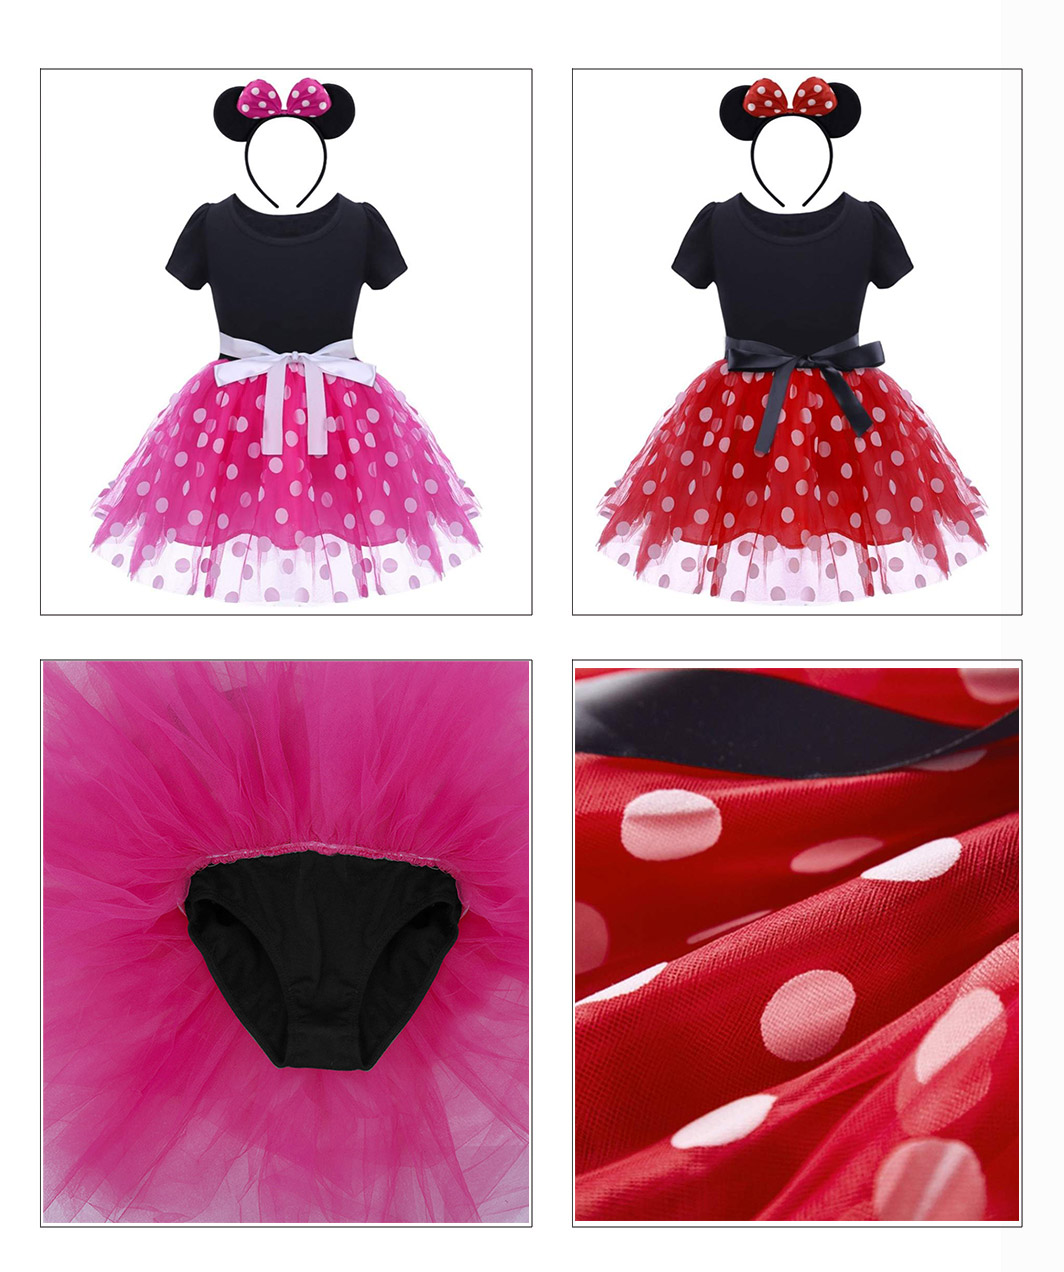 H50a5db5327a640c084eb1a264c439fe5h - Fancy Baby Girl Princess Clothes Kid Jasmine Rapunzel Aurora Belle Ariel Cosplay Costume Child Elsa Anna Elena Sofia Party Dress